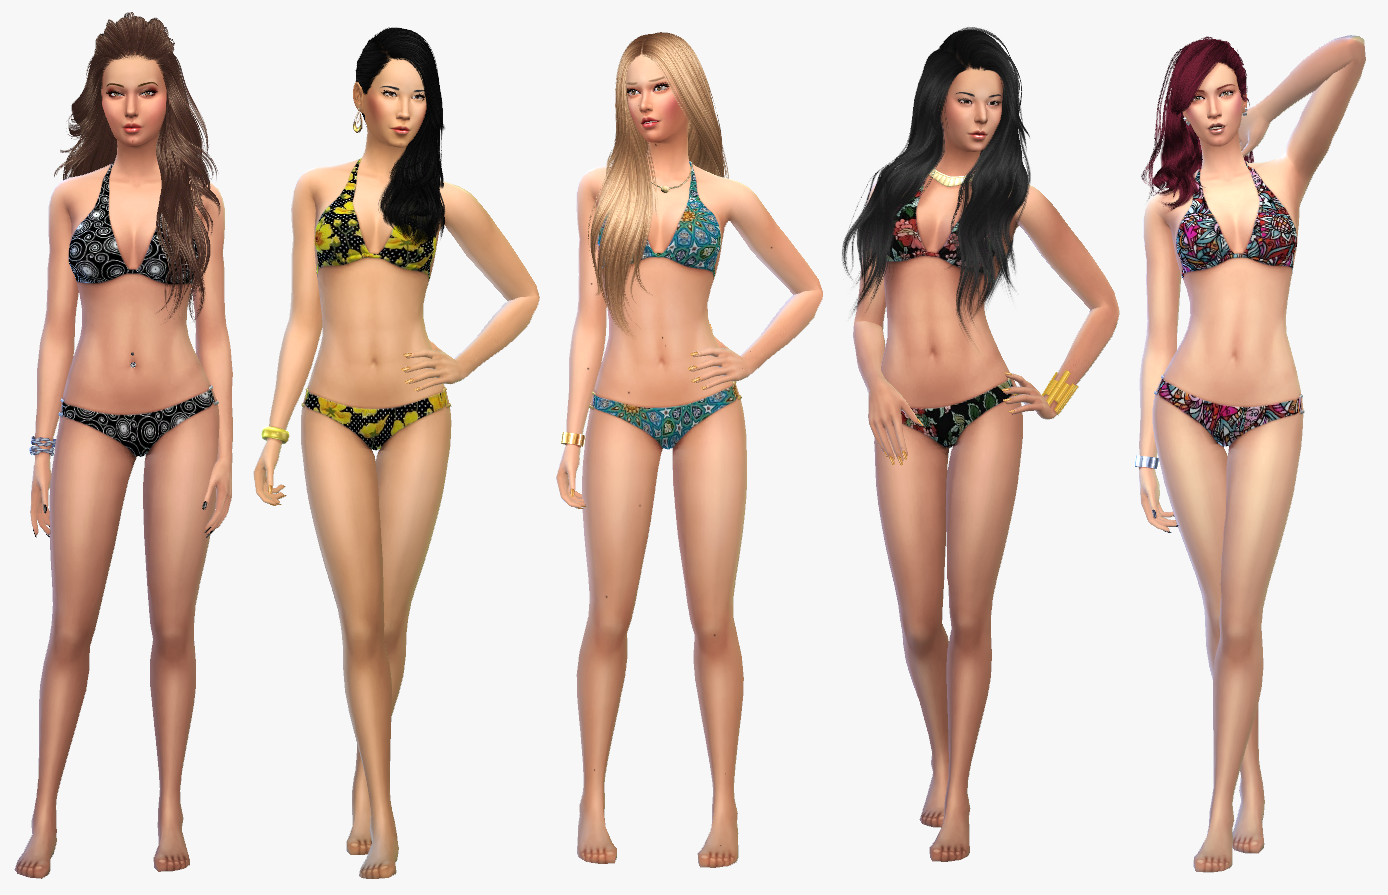 Swimwear for Females by MichaelaP